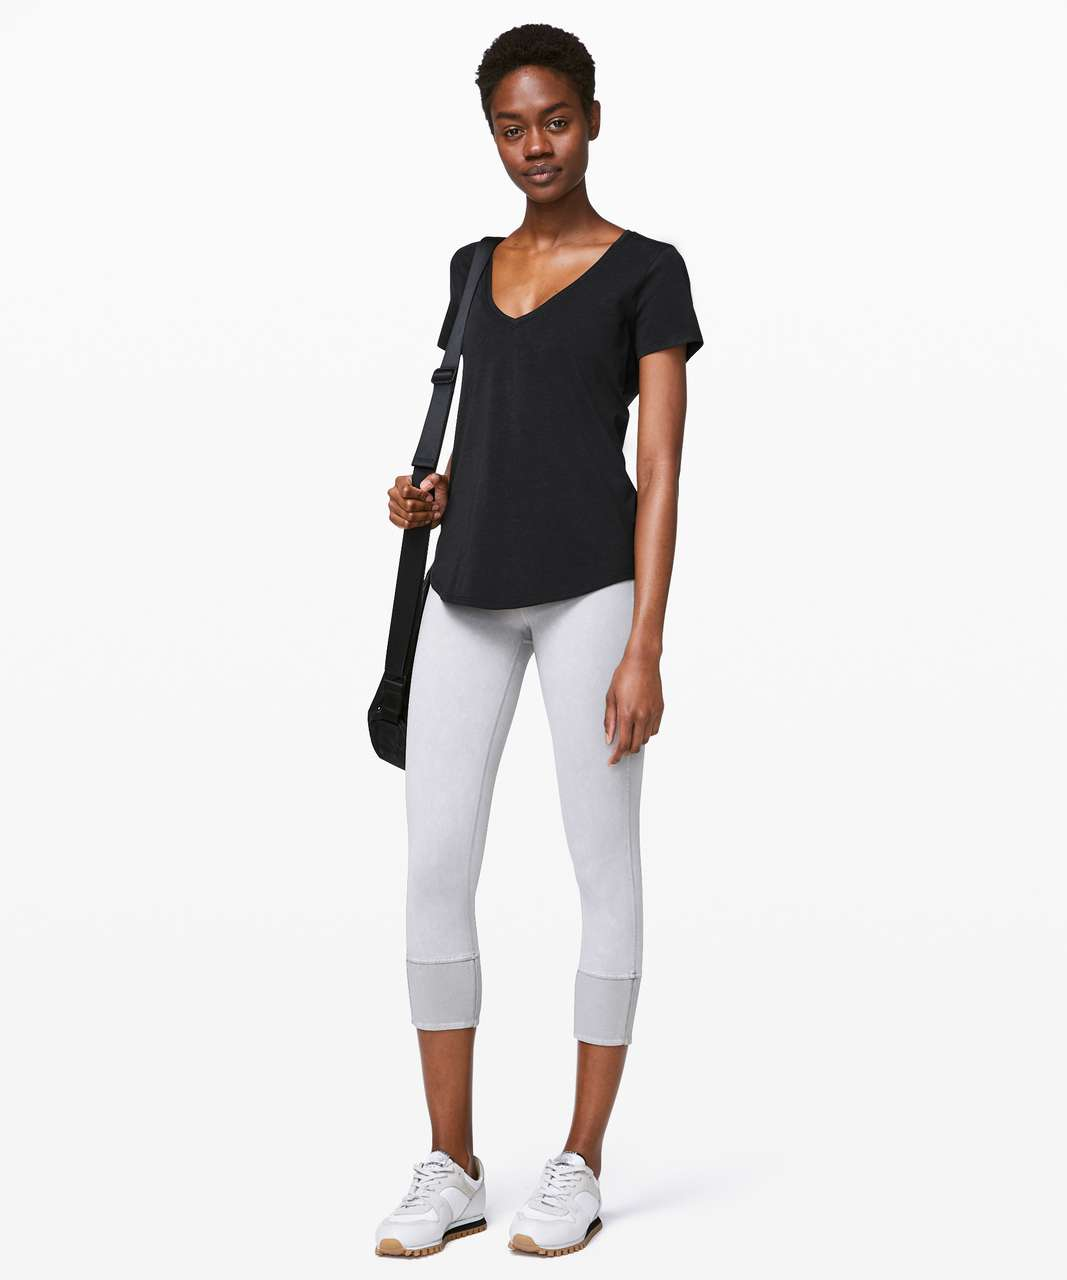 Lululemon Love Tee V - Black